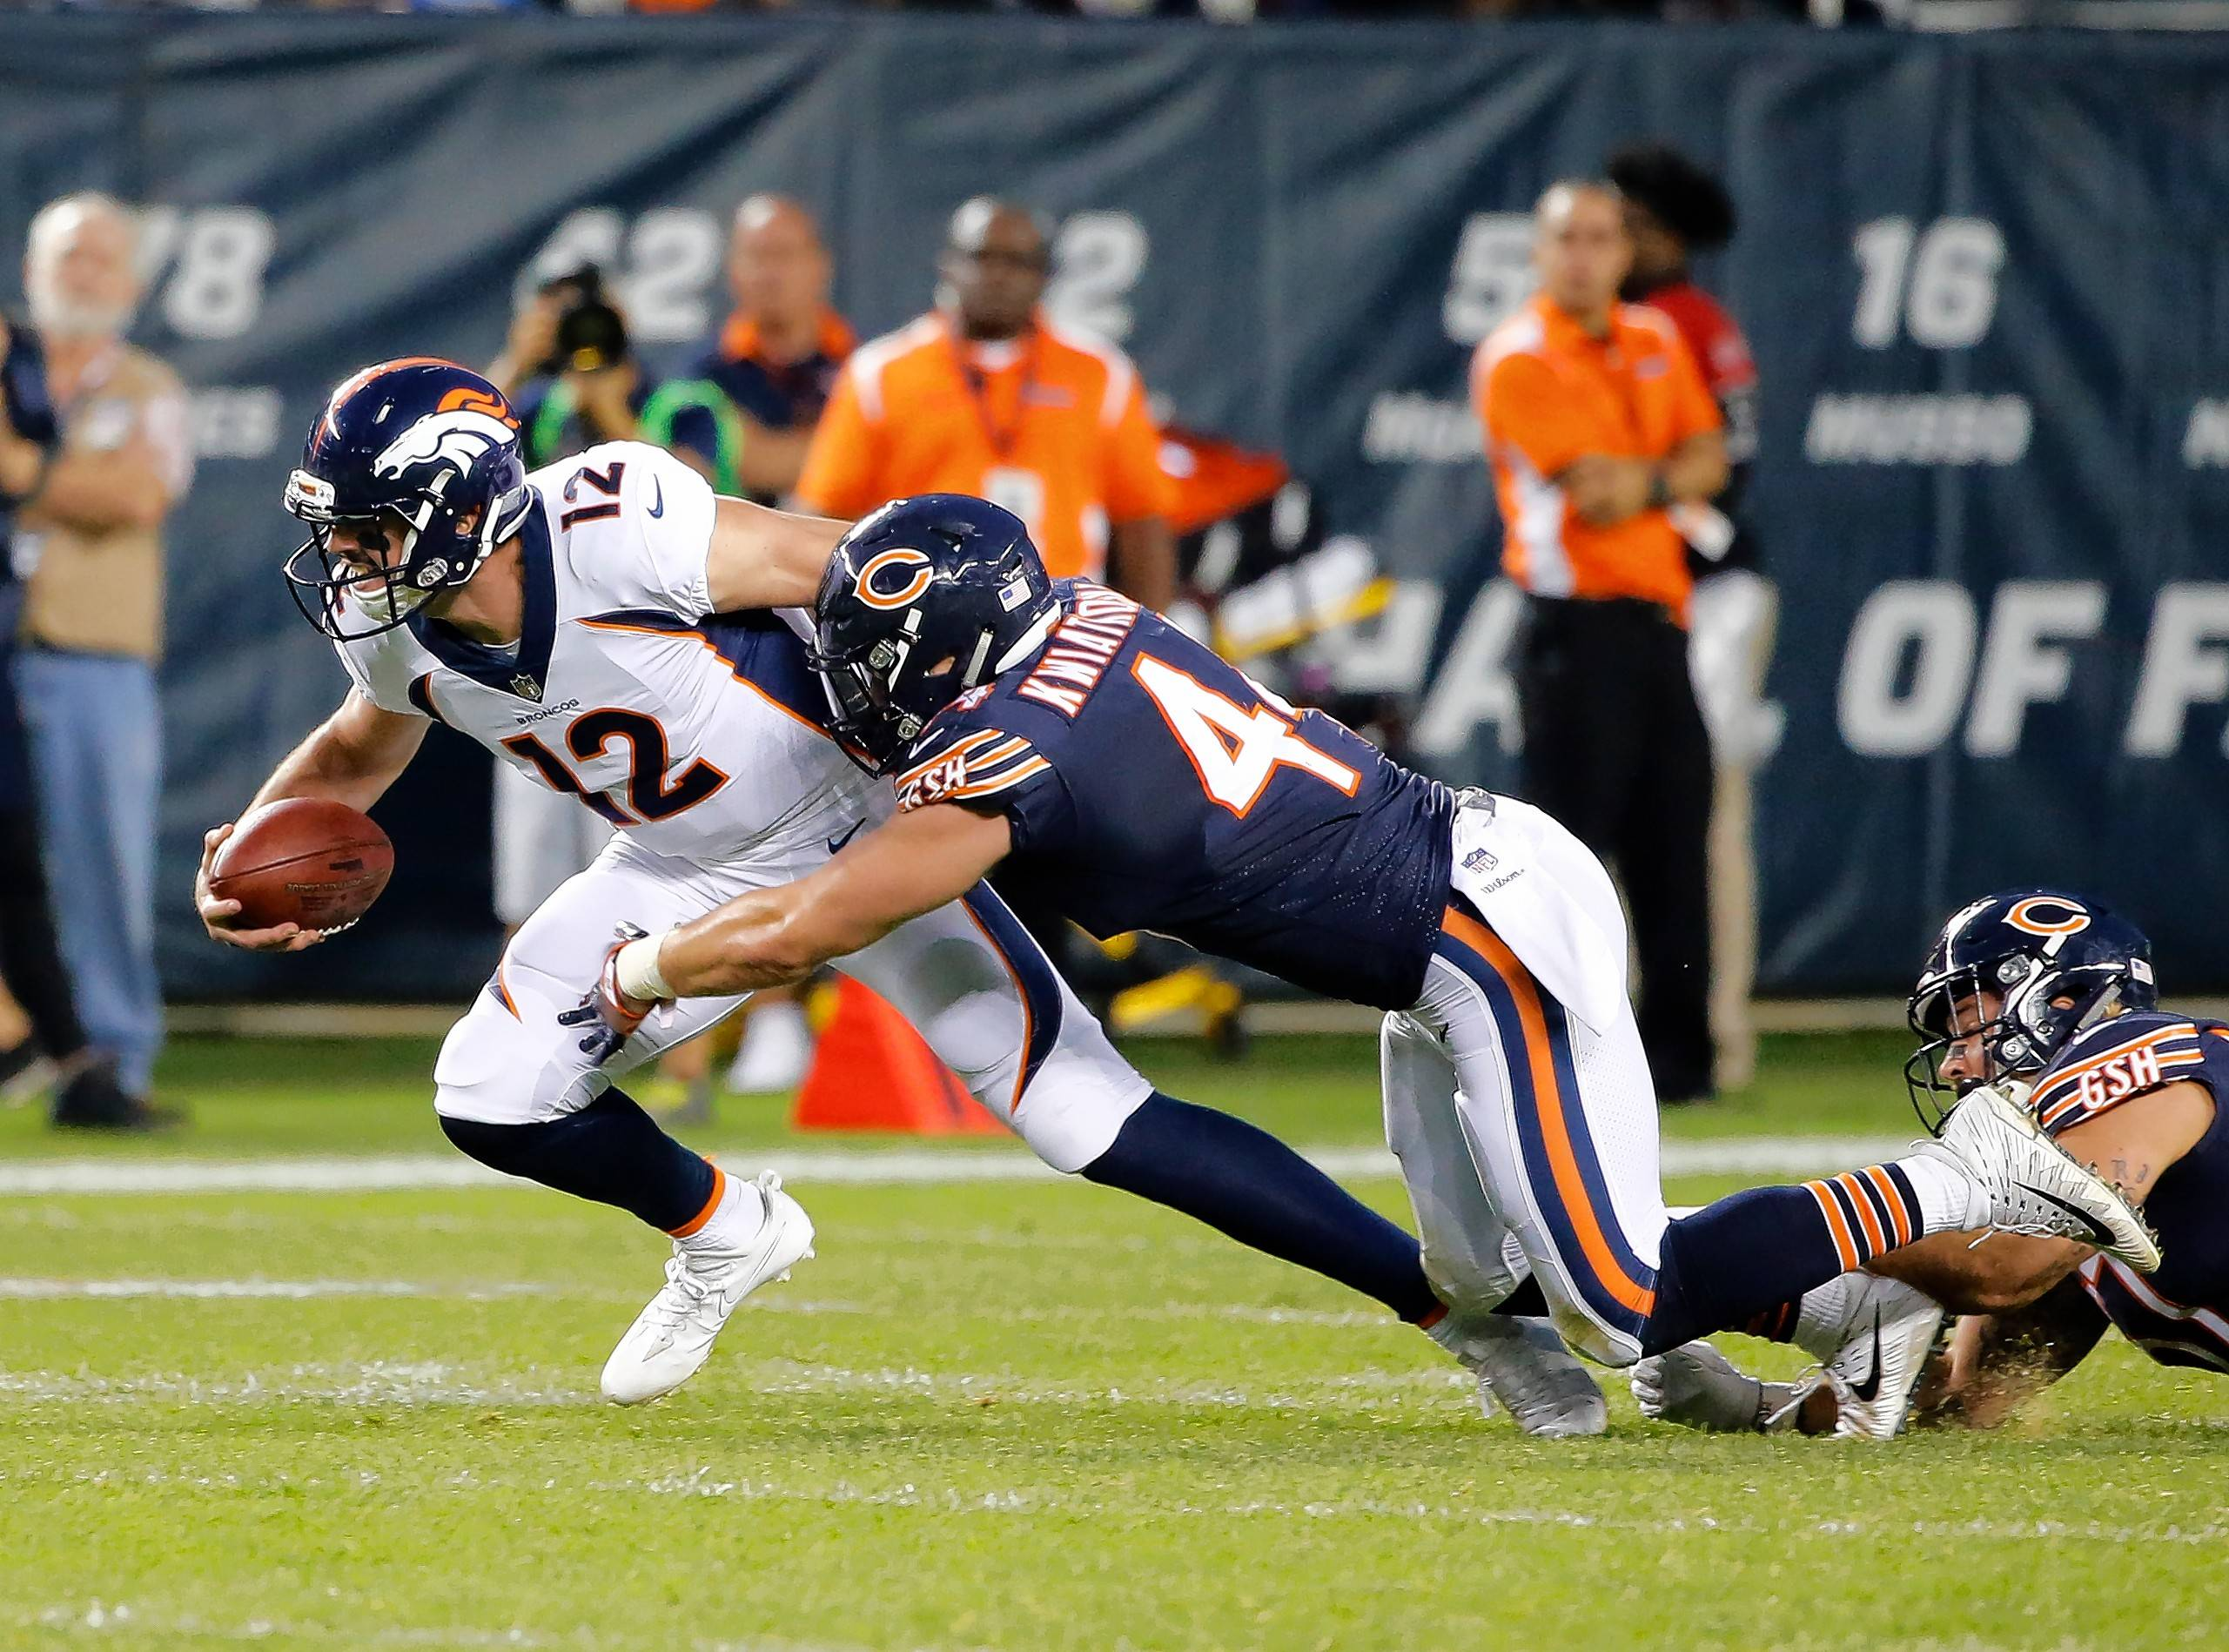 Through three quarters Thursday night, the Bears' defense had permitted just 144 yards of total offense and had not allowed the visiting Denver Broncos any plays longer than 14 yards. But two costly the fourth-quarter failures spoiled an otherwise strong showing. Inside linebacker Nick Kwiatkoski (above), starting in place of Danny Trevathan (knee), led the Bears with 6 tackles, including a team-best 5 solos.